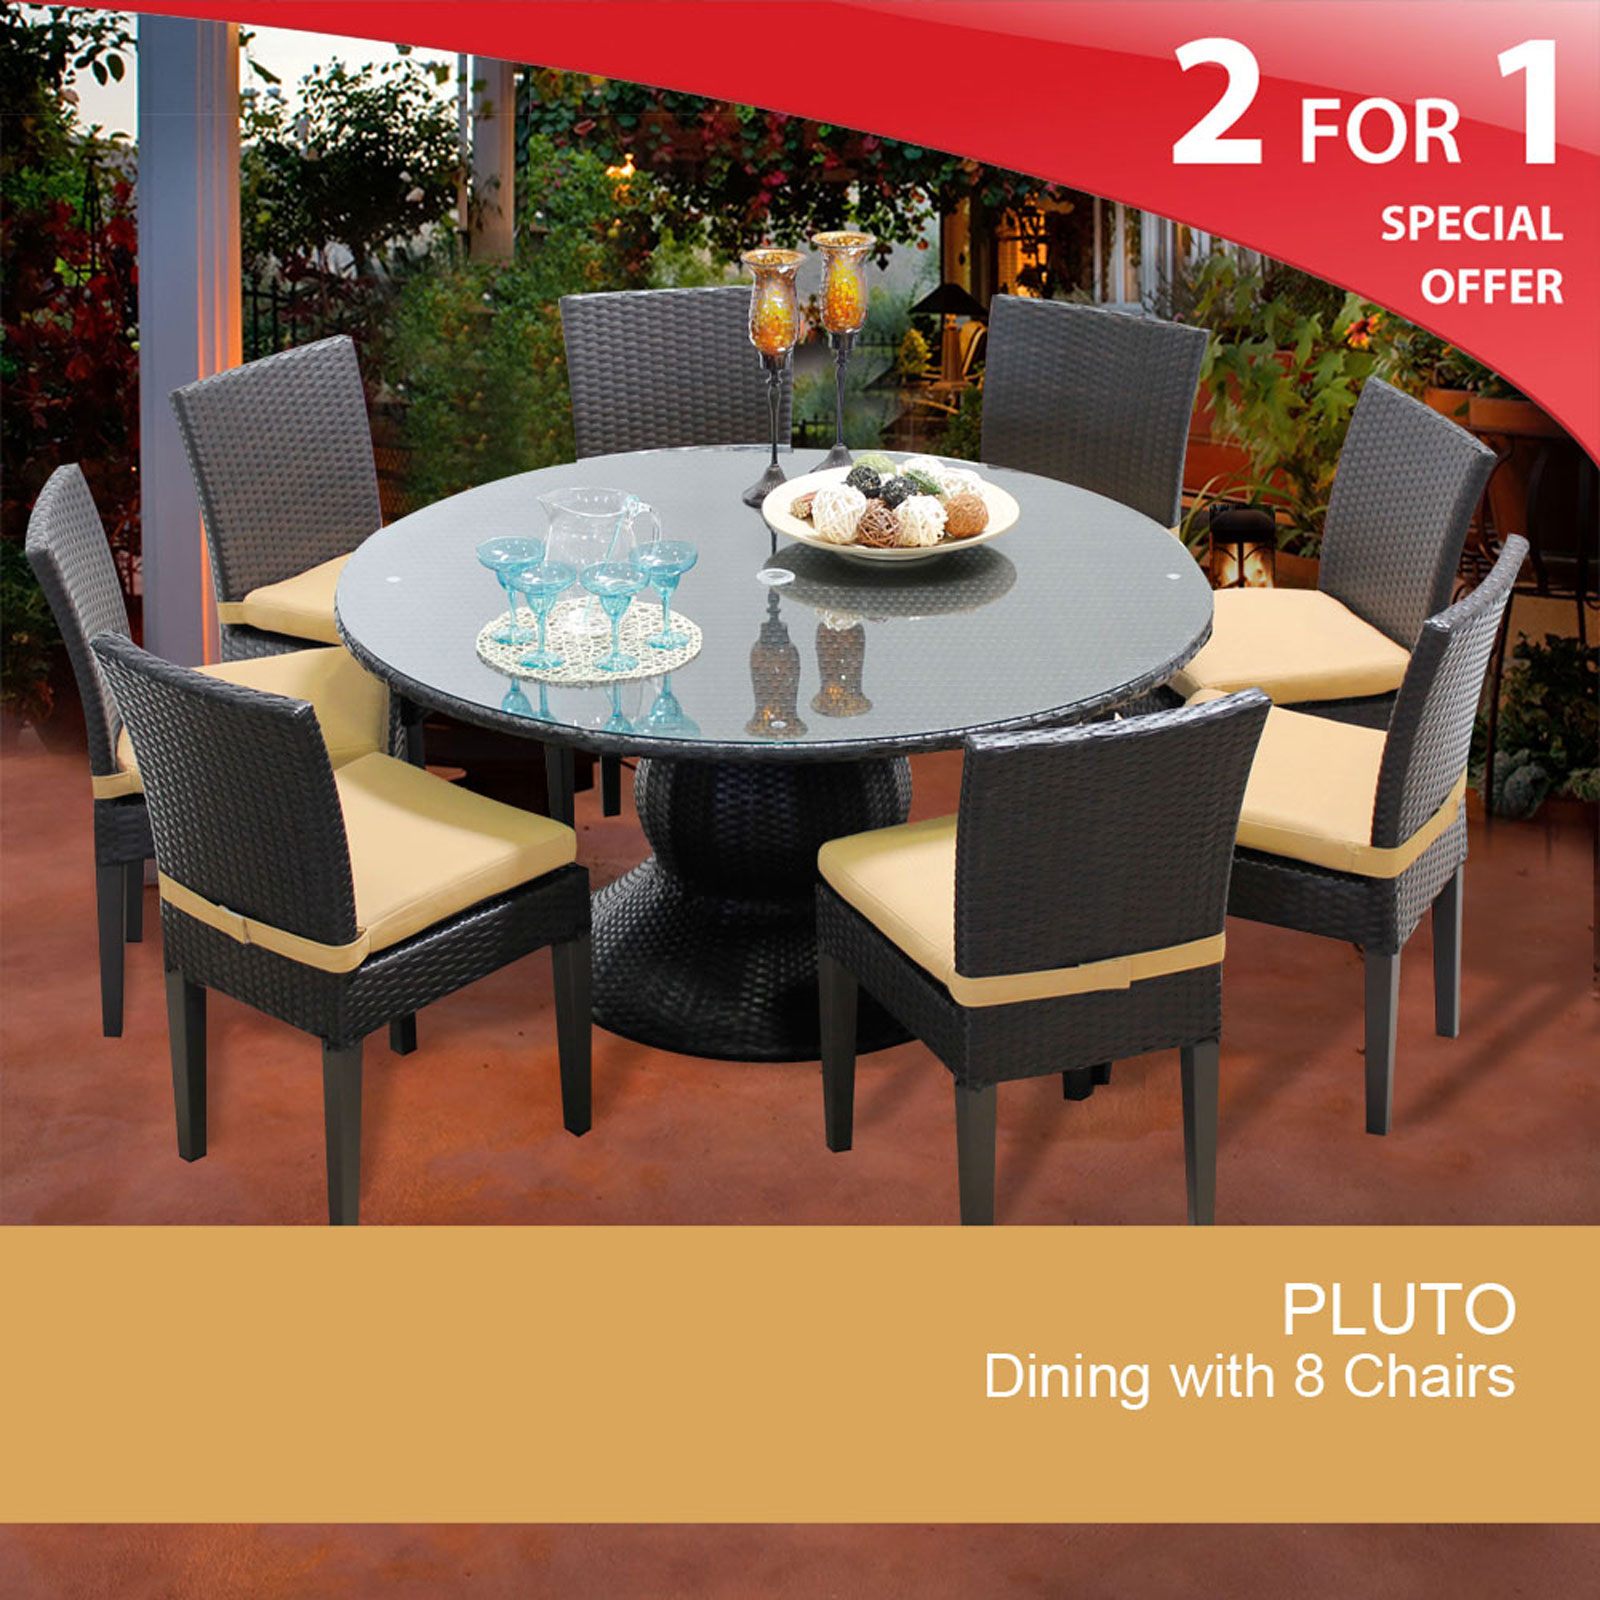 Pluto 60 Inch Outdoor Patio Dining Table With 8 Chairs Walmart Com